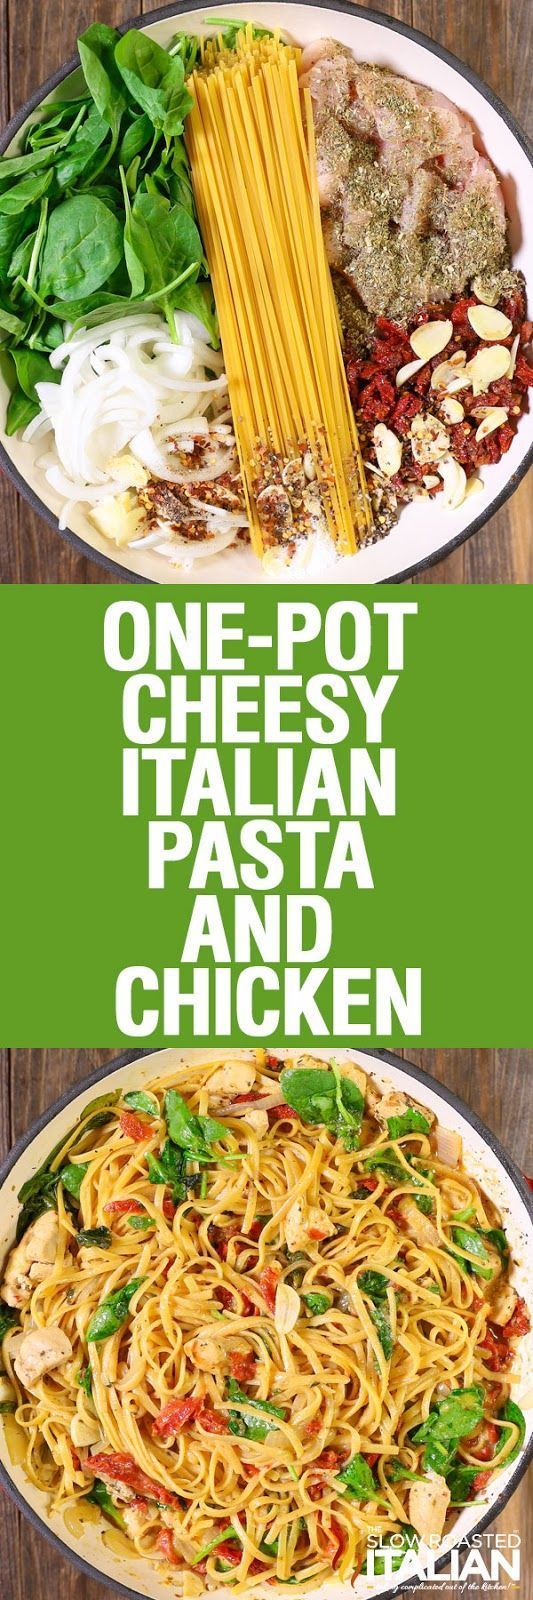 Cheese Italian Pasta and Chicken is a rich and savory dish bursting with your favorite flavors! This simple recipe features a creamy sun-dried tomato sauce that is cooked right into the pasta in this amazing one-pot dish. Toss it all in a pot and let it cook. It's so easy that it just about cooks itself.  Now that's my kind of meal!!!